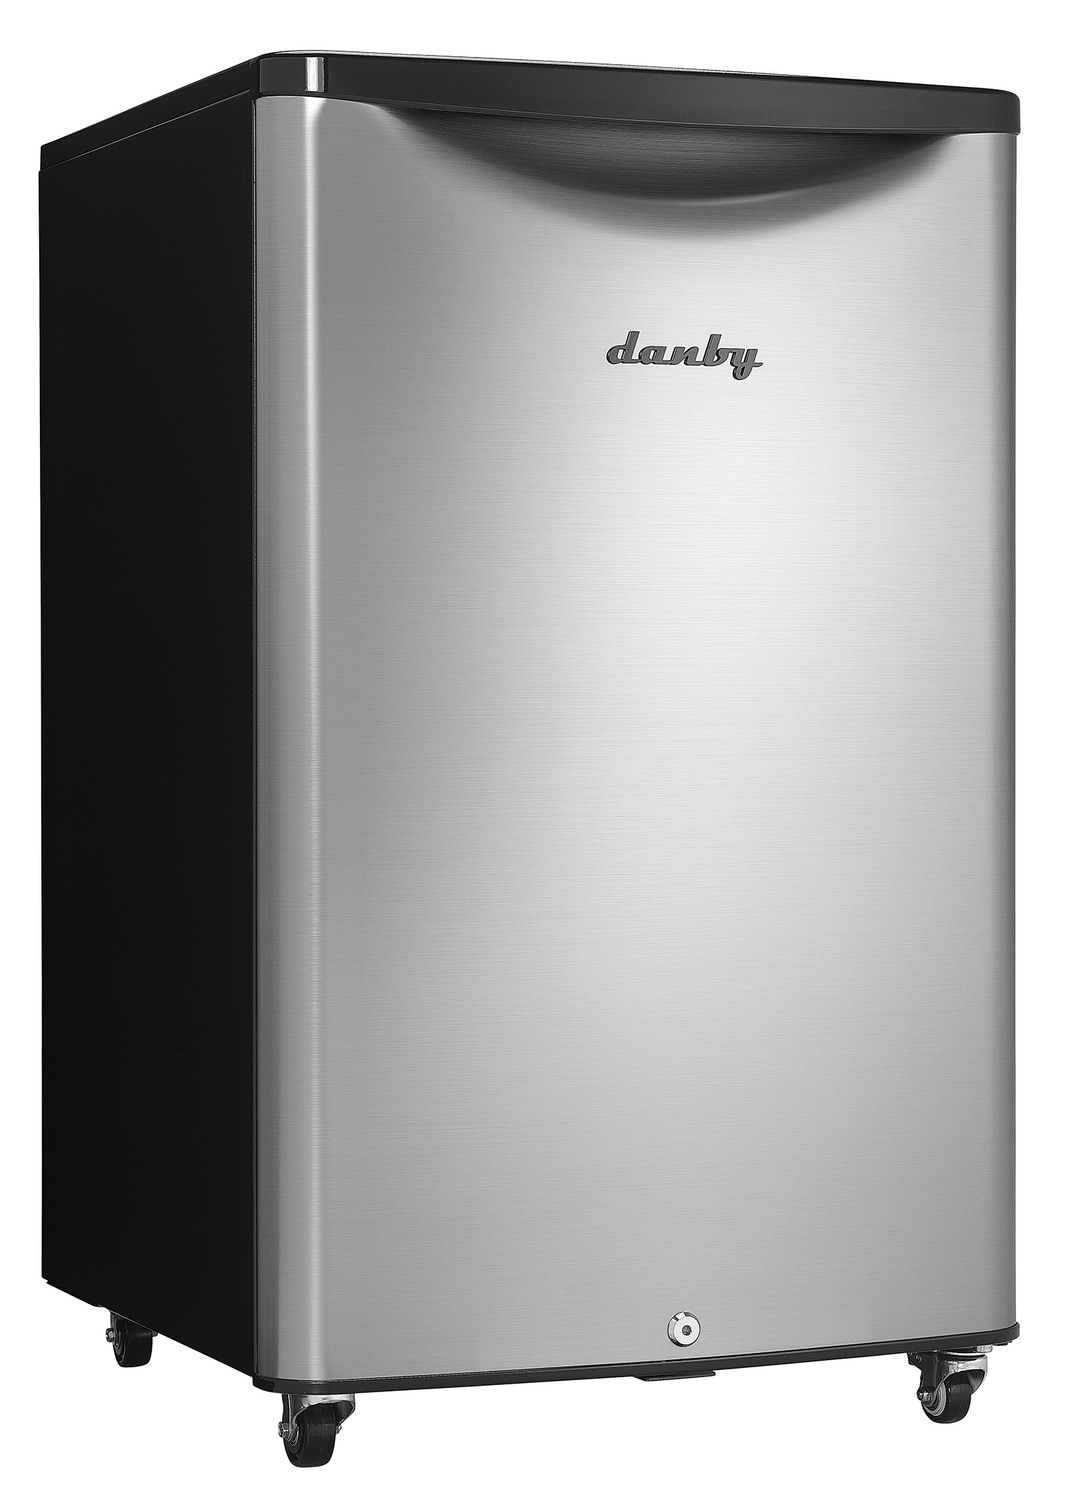 Danby Stainless Steel Outdoor Compact Refrigerator (4.4 Cu. Ft.) - DAR033A1BSLDBO